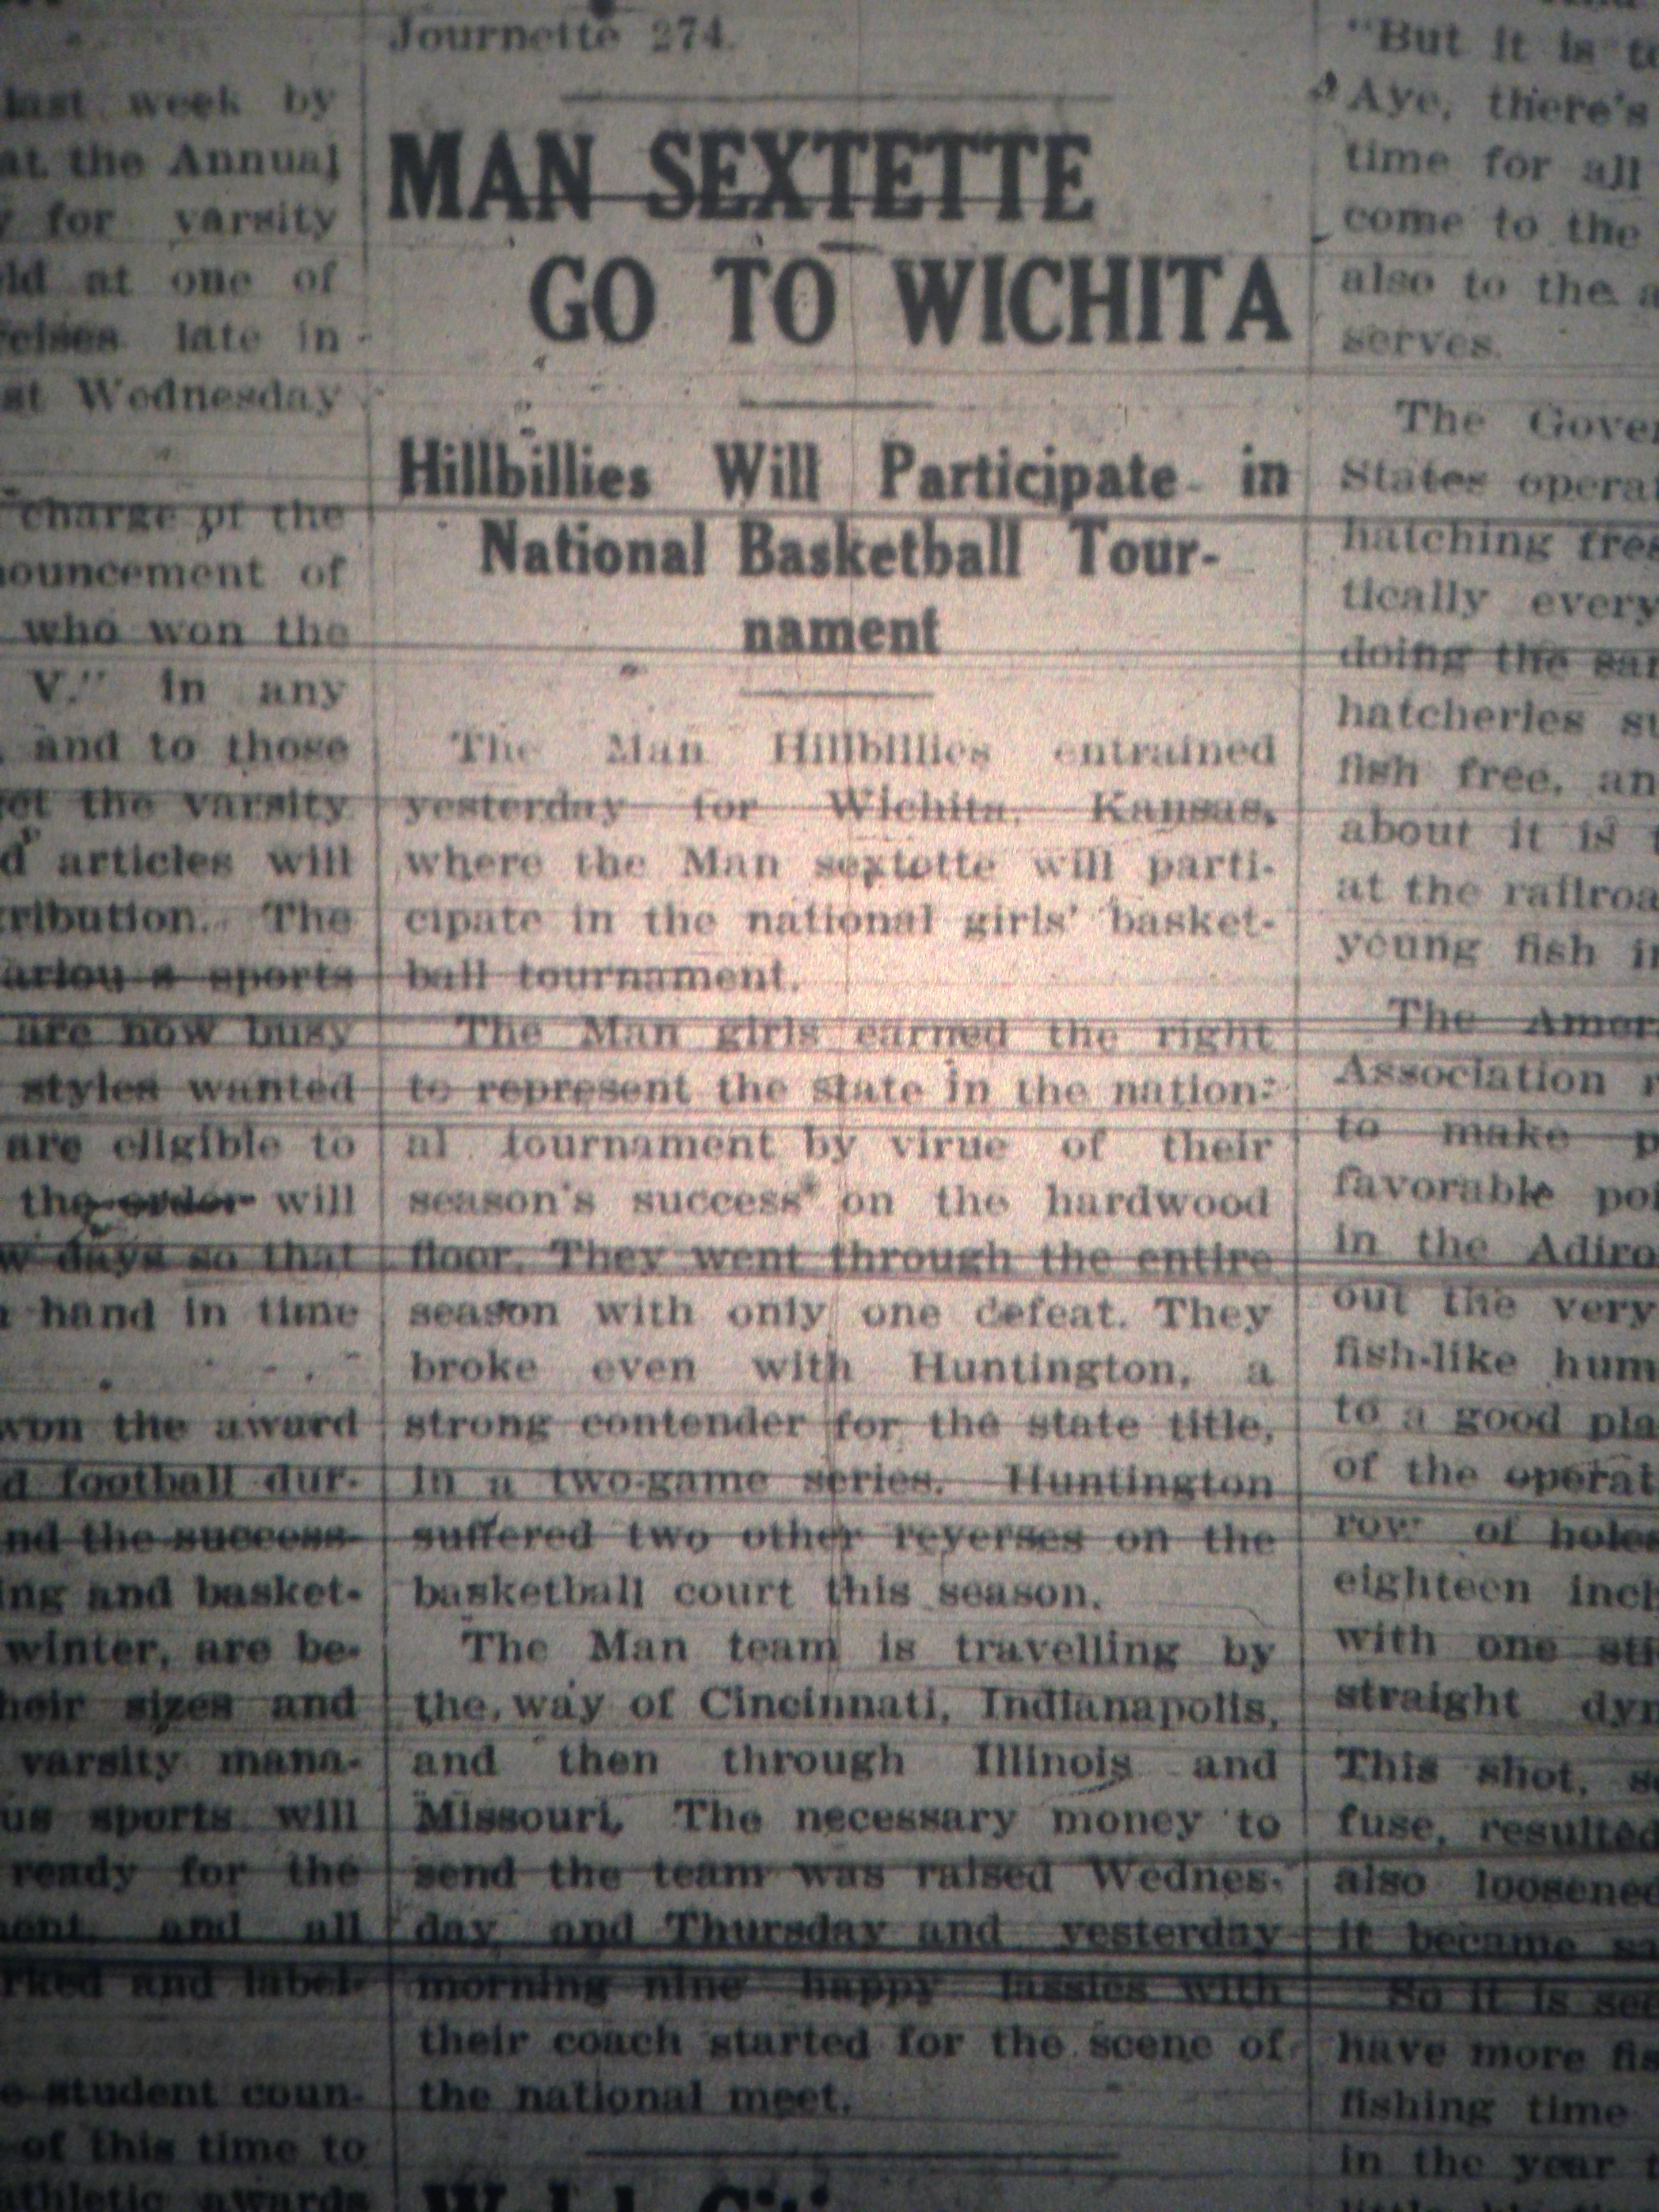 Man HS Girls Basketball Team Goes to Kansas LB 03.27.1928 1